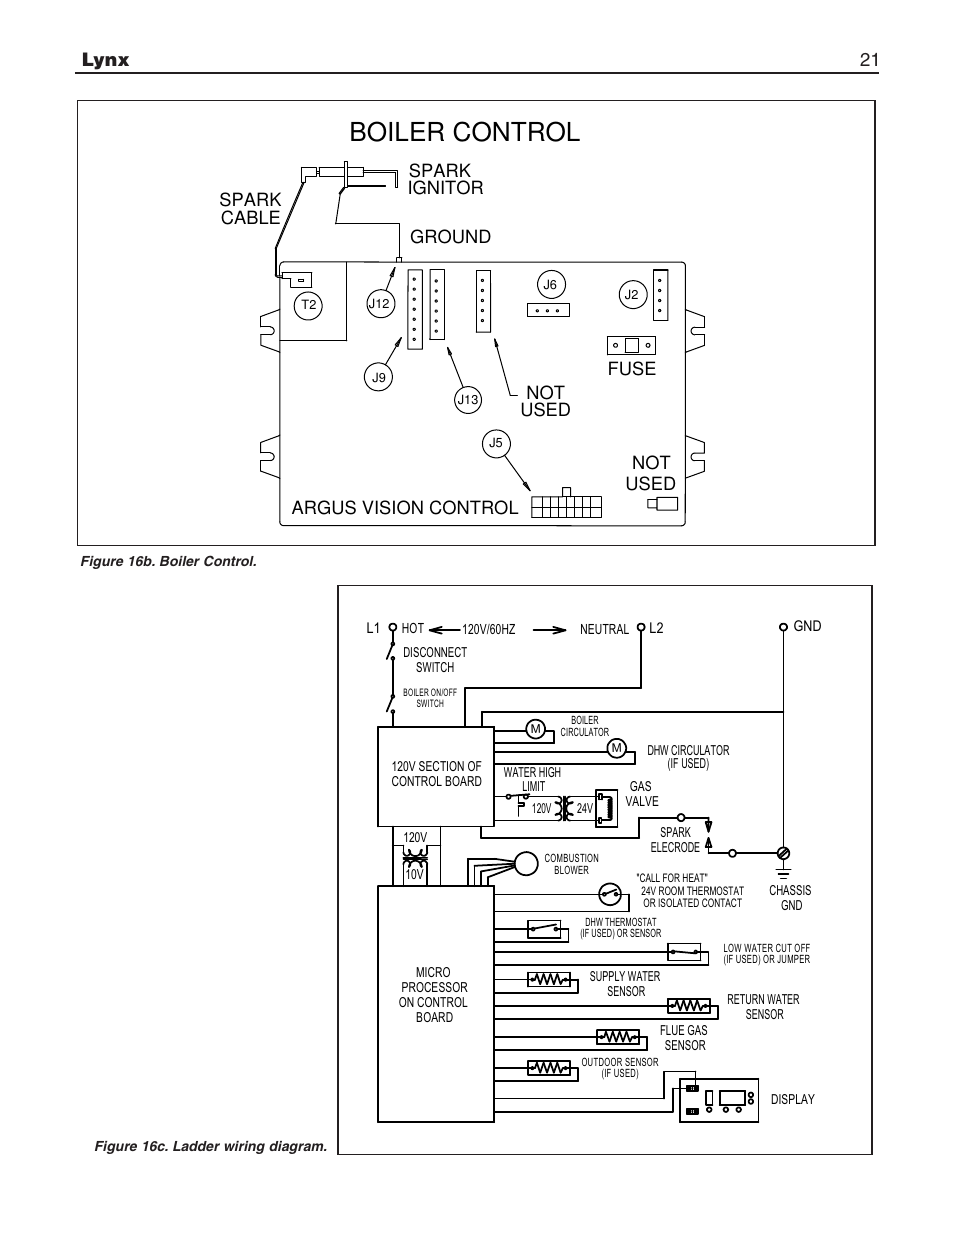 slant fin boiler wiring diagram wiring library old slant fin boilers hot water boiler control, lynx 21 argus vision control not used not used, spark ignitor spark